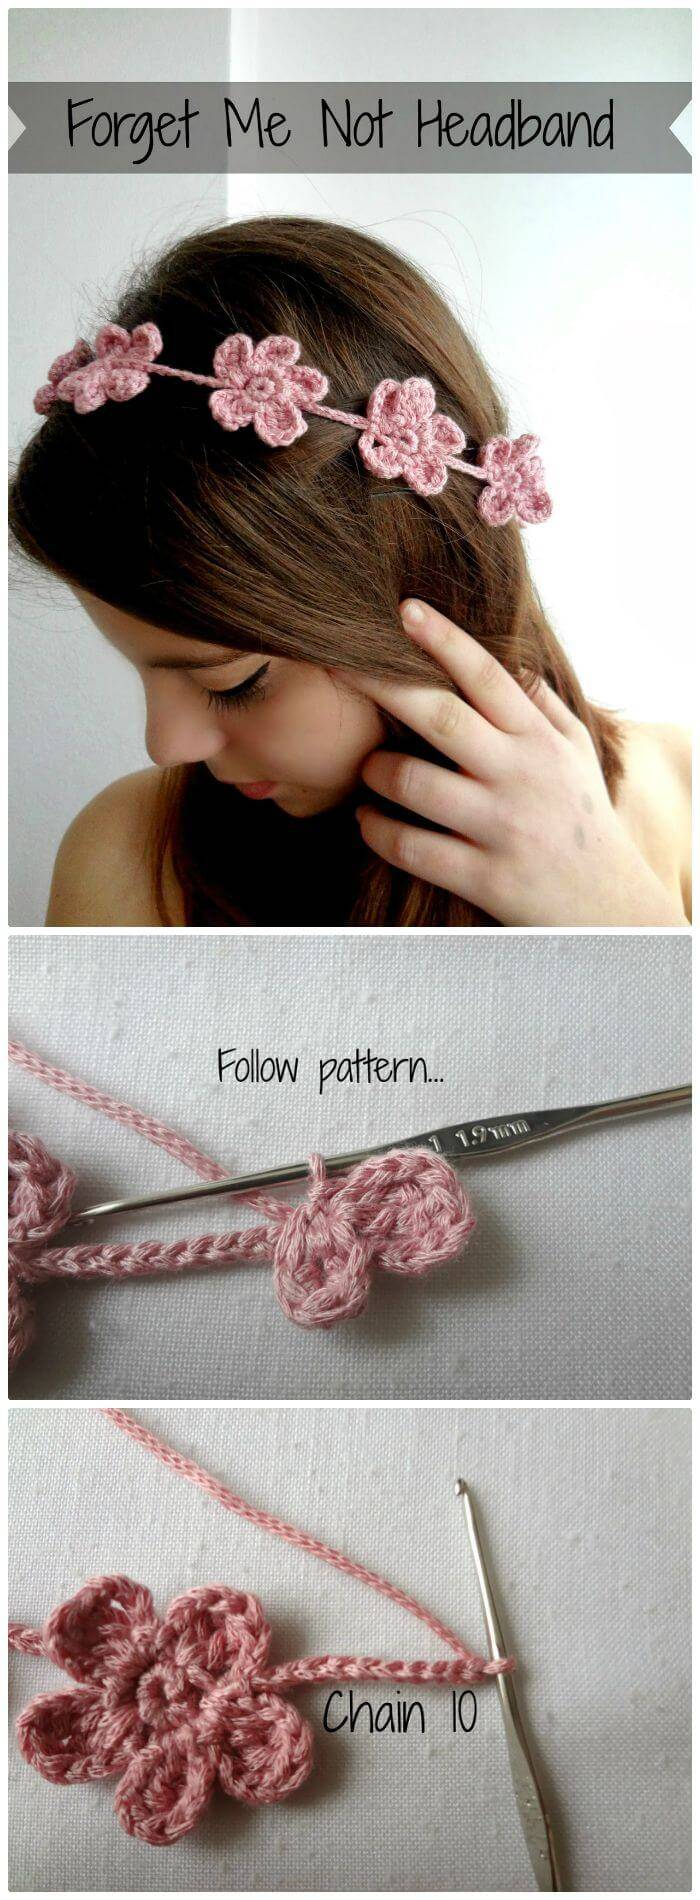 Crochet Forget Me Not Headband - Free Tutorial